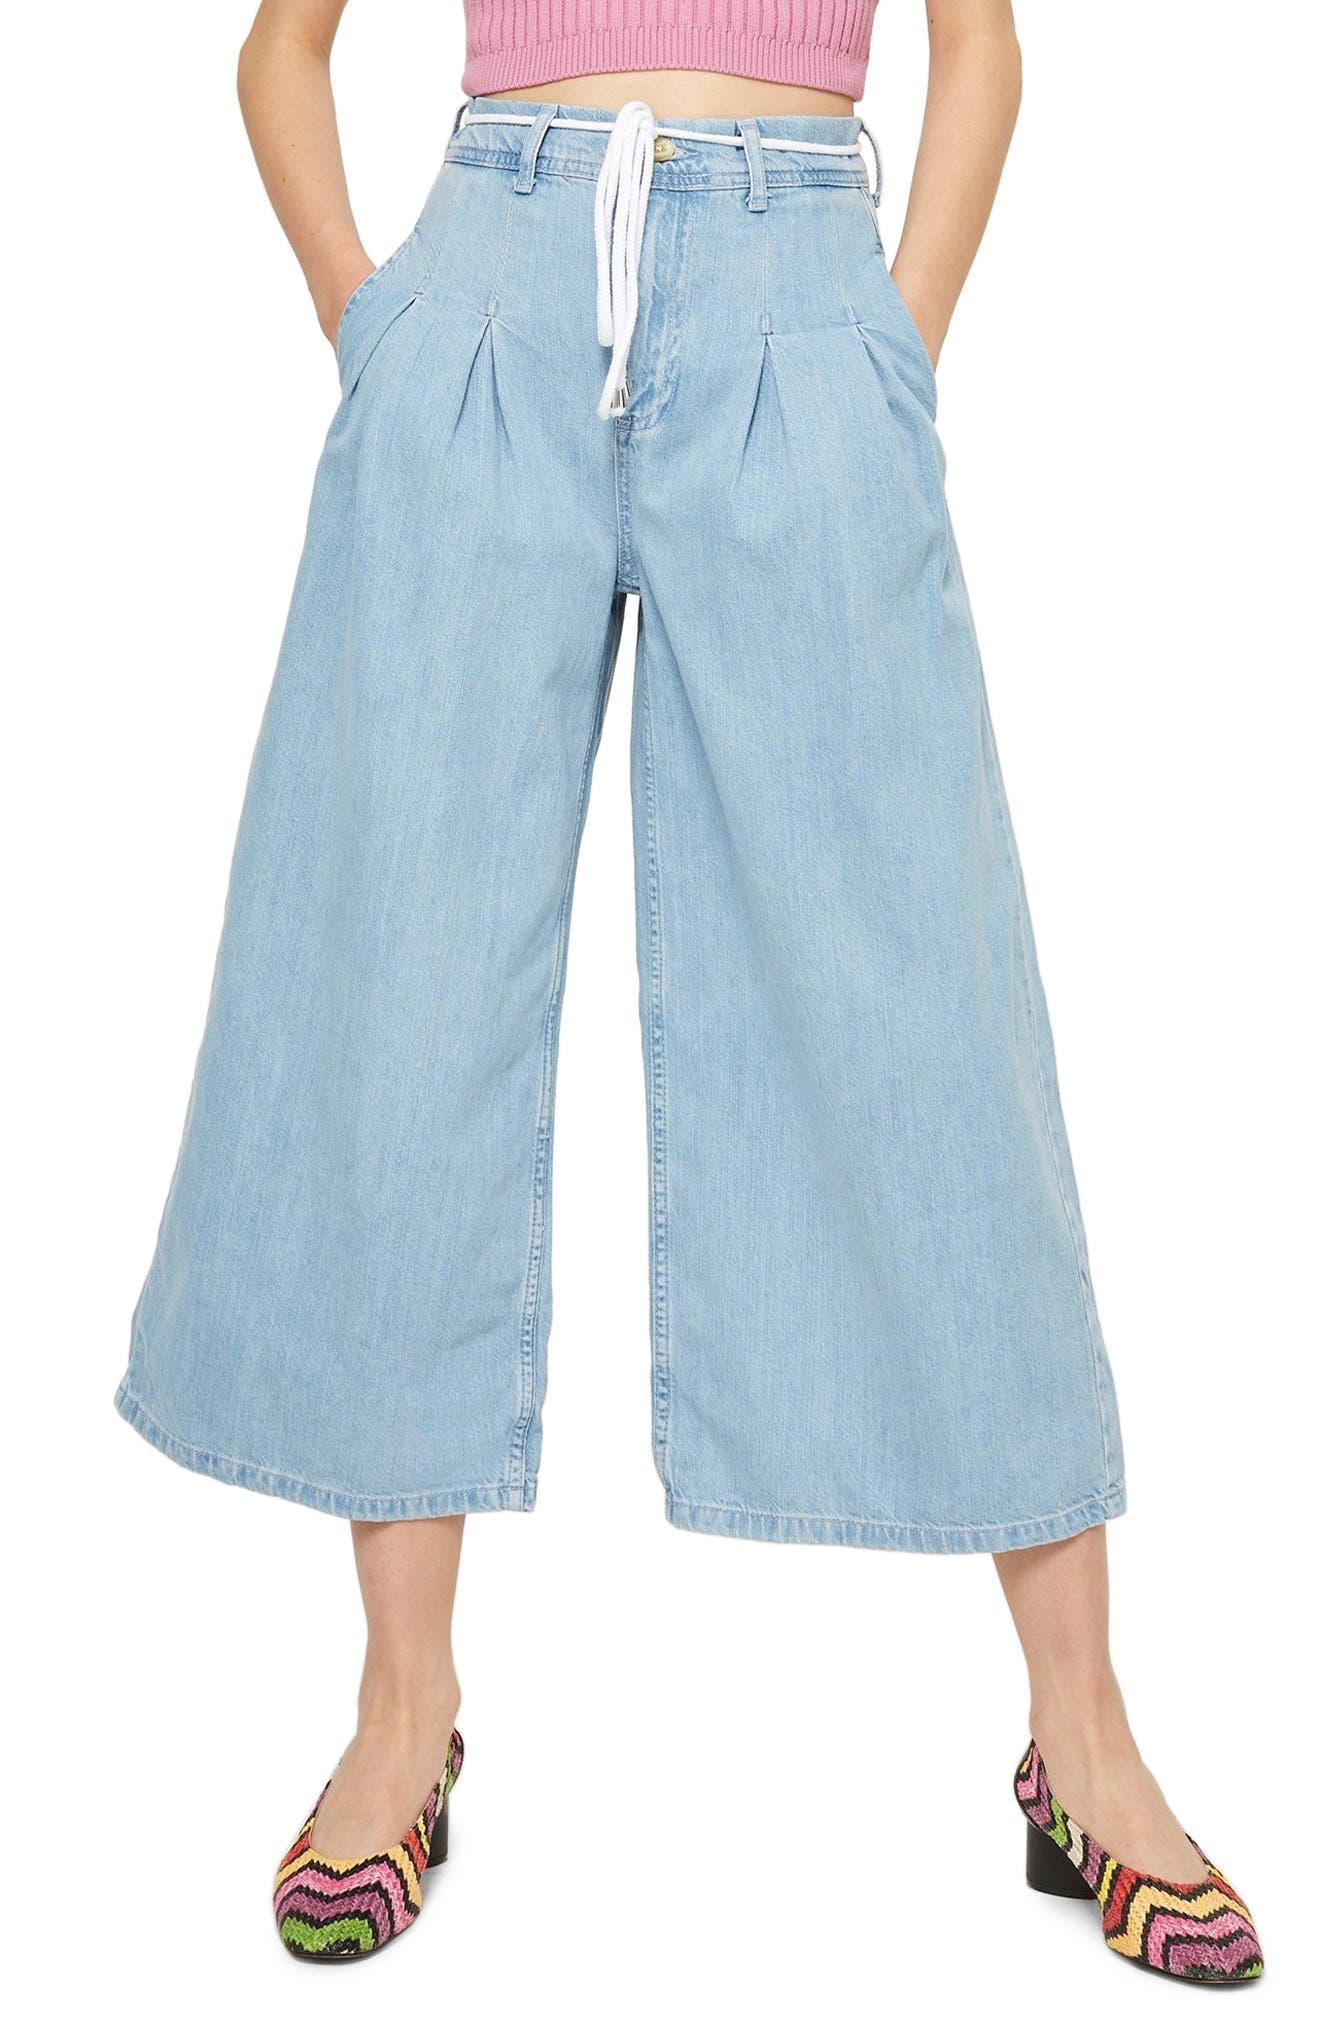 MOTO Pleat Tie Crop Wide-Leg Jeans,                             Main thumbnail 1, color,                             Light Bleach Denim